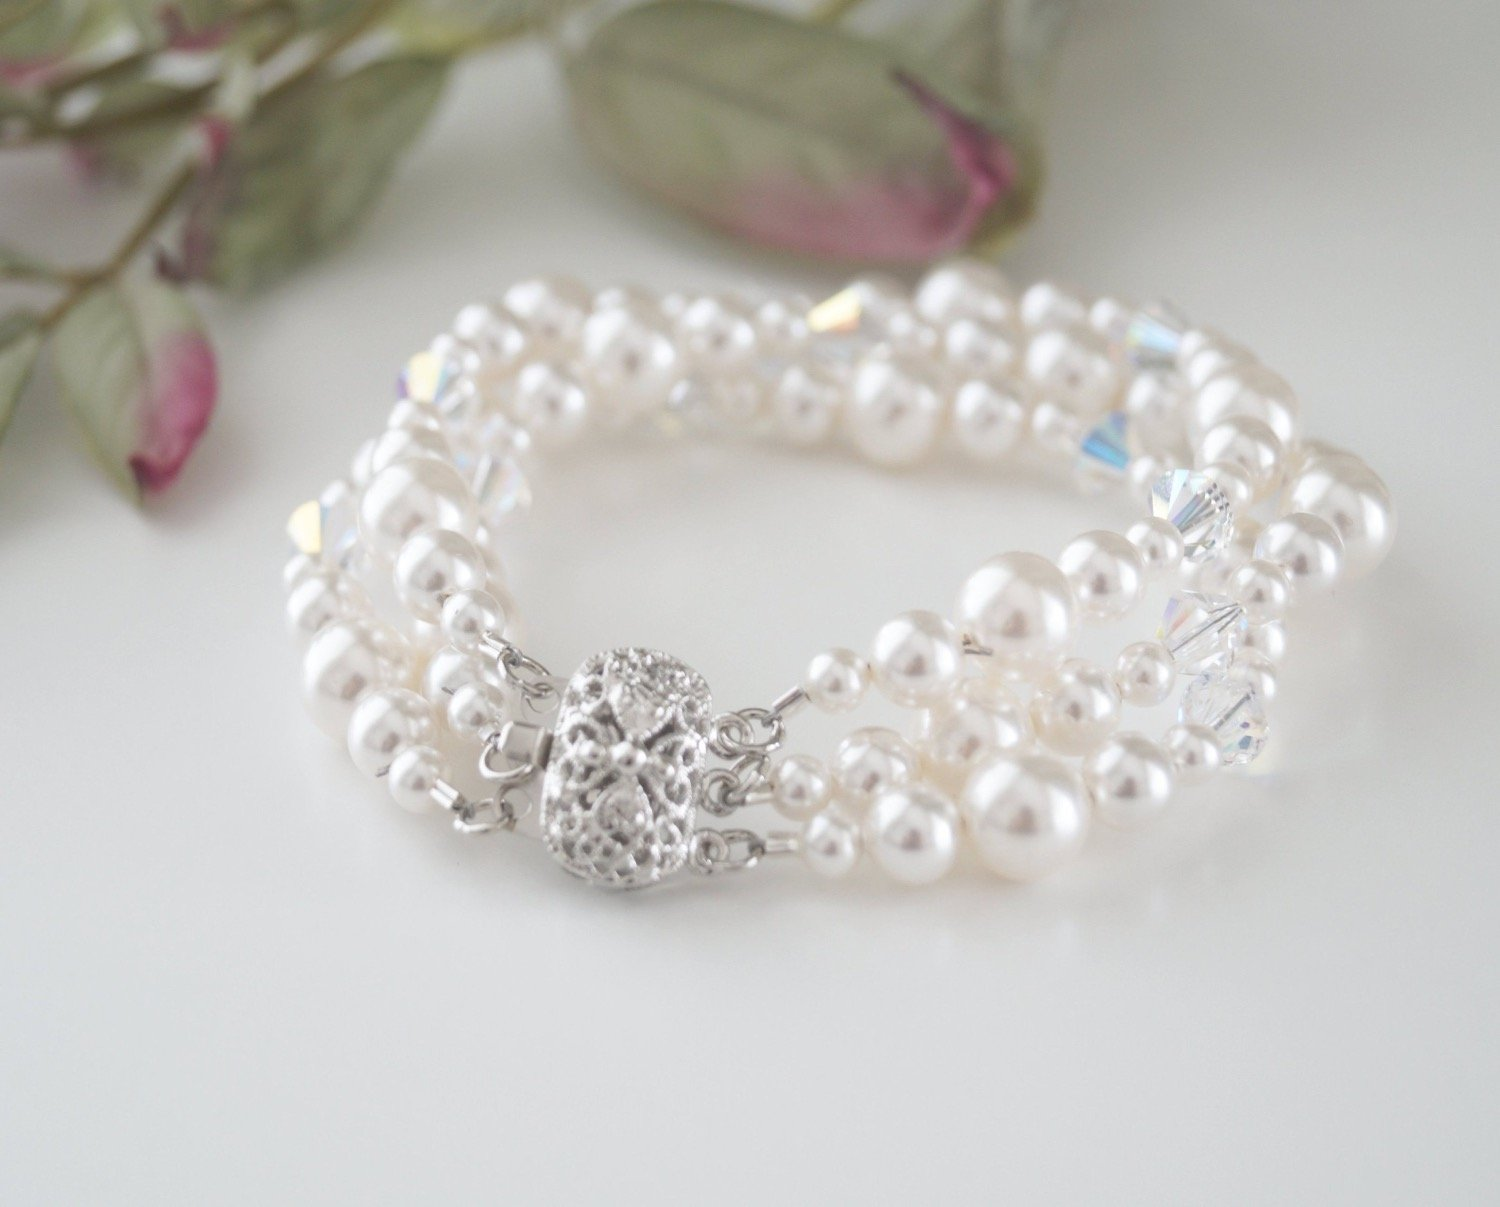 Pearl And Crystal Bracelet Bridal jewelry - Clairesbridal - 1